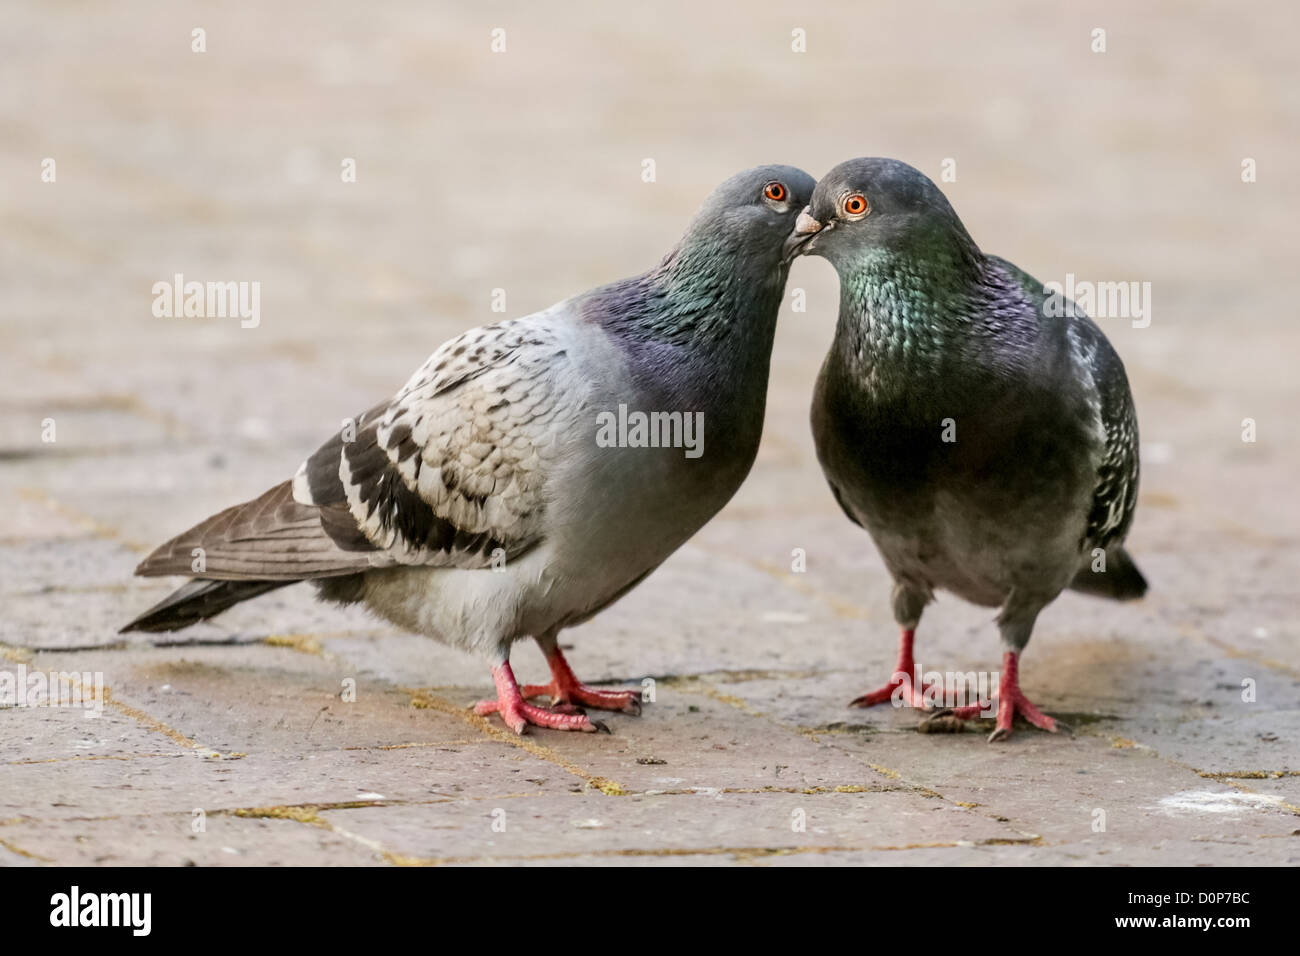 Two pigeon kissing by inter locking their beaks - Stock Image